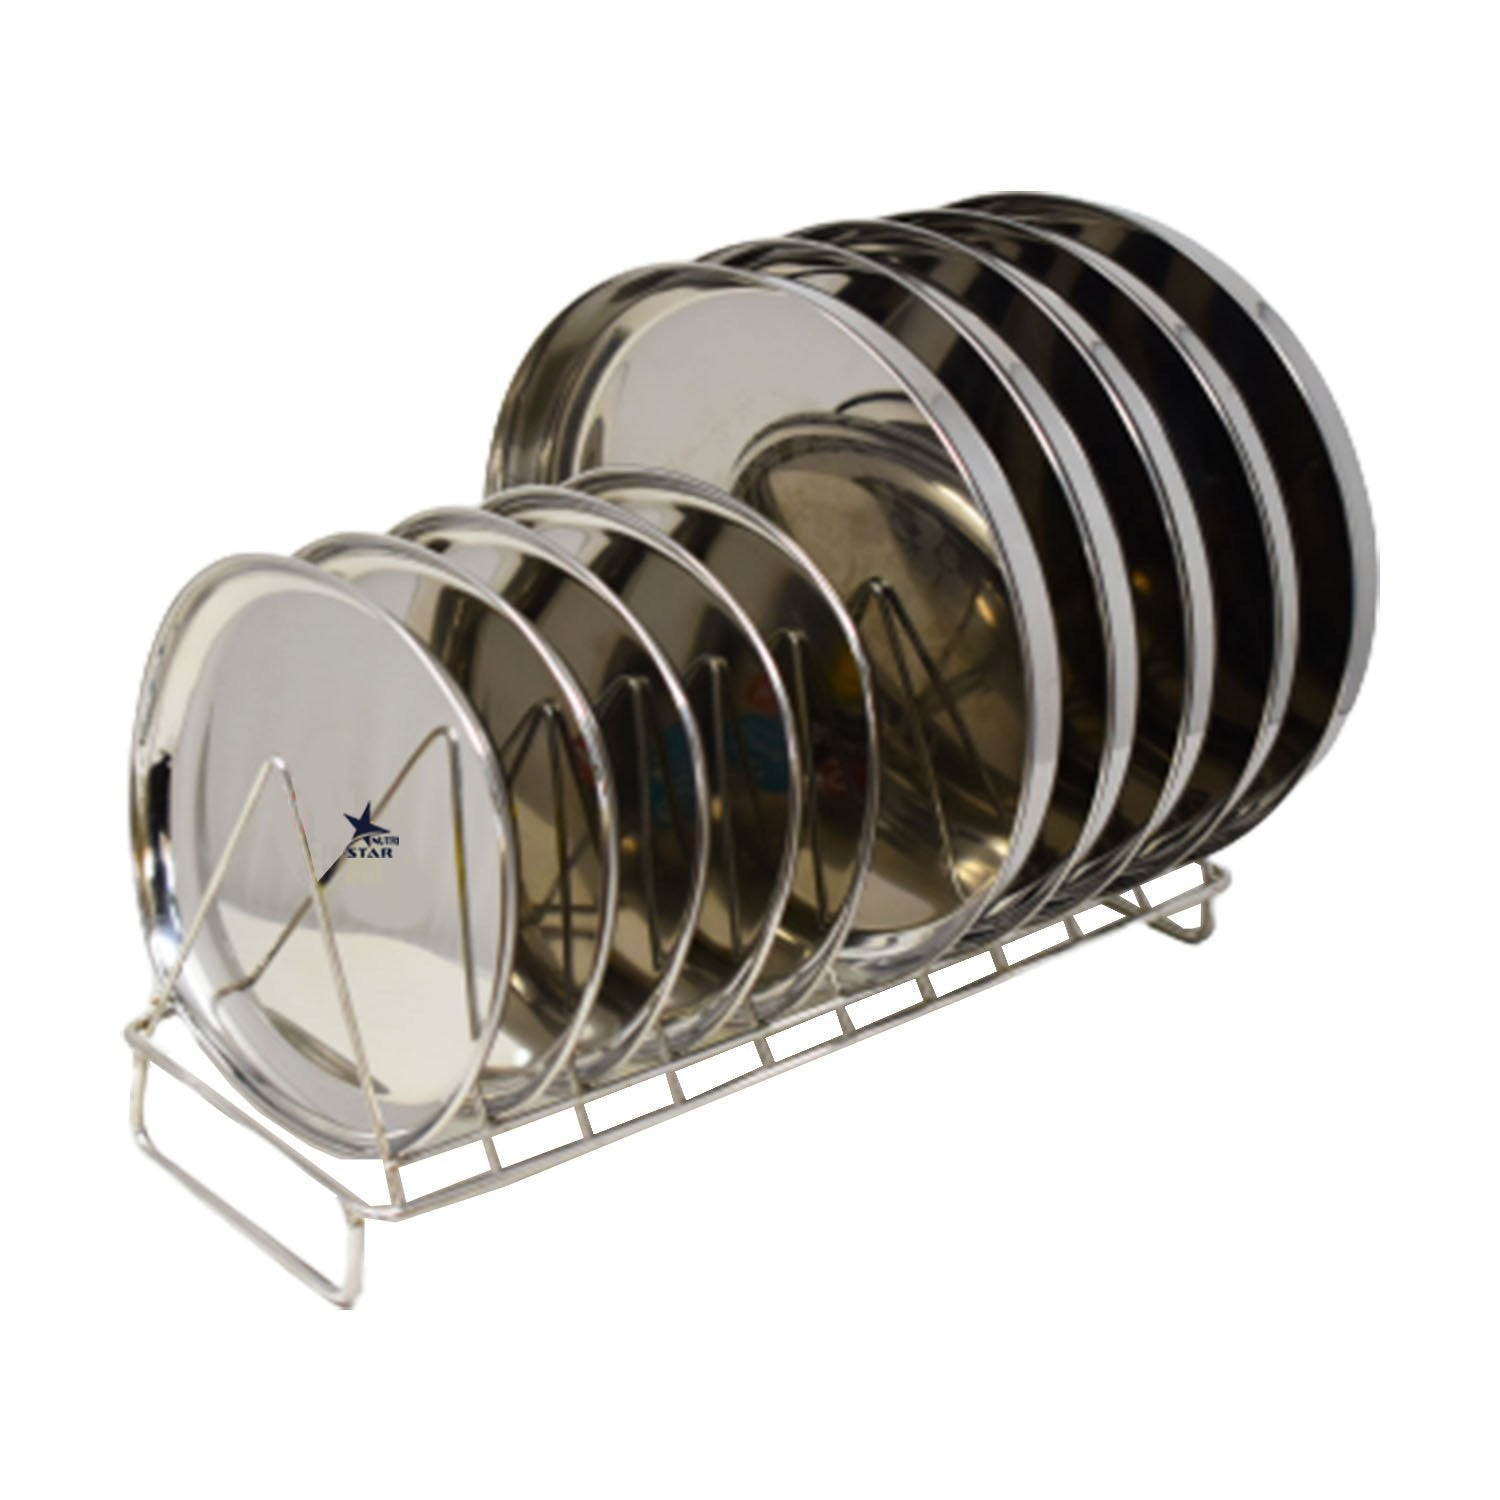 Nutristar Stainless Steel Stand for Kitchen | Plates Stand for Kitchen Size 15 Inch x 6 Inch x 9 Inch…